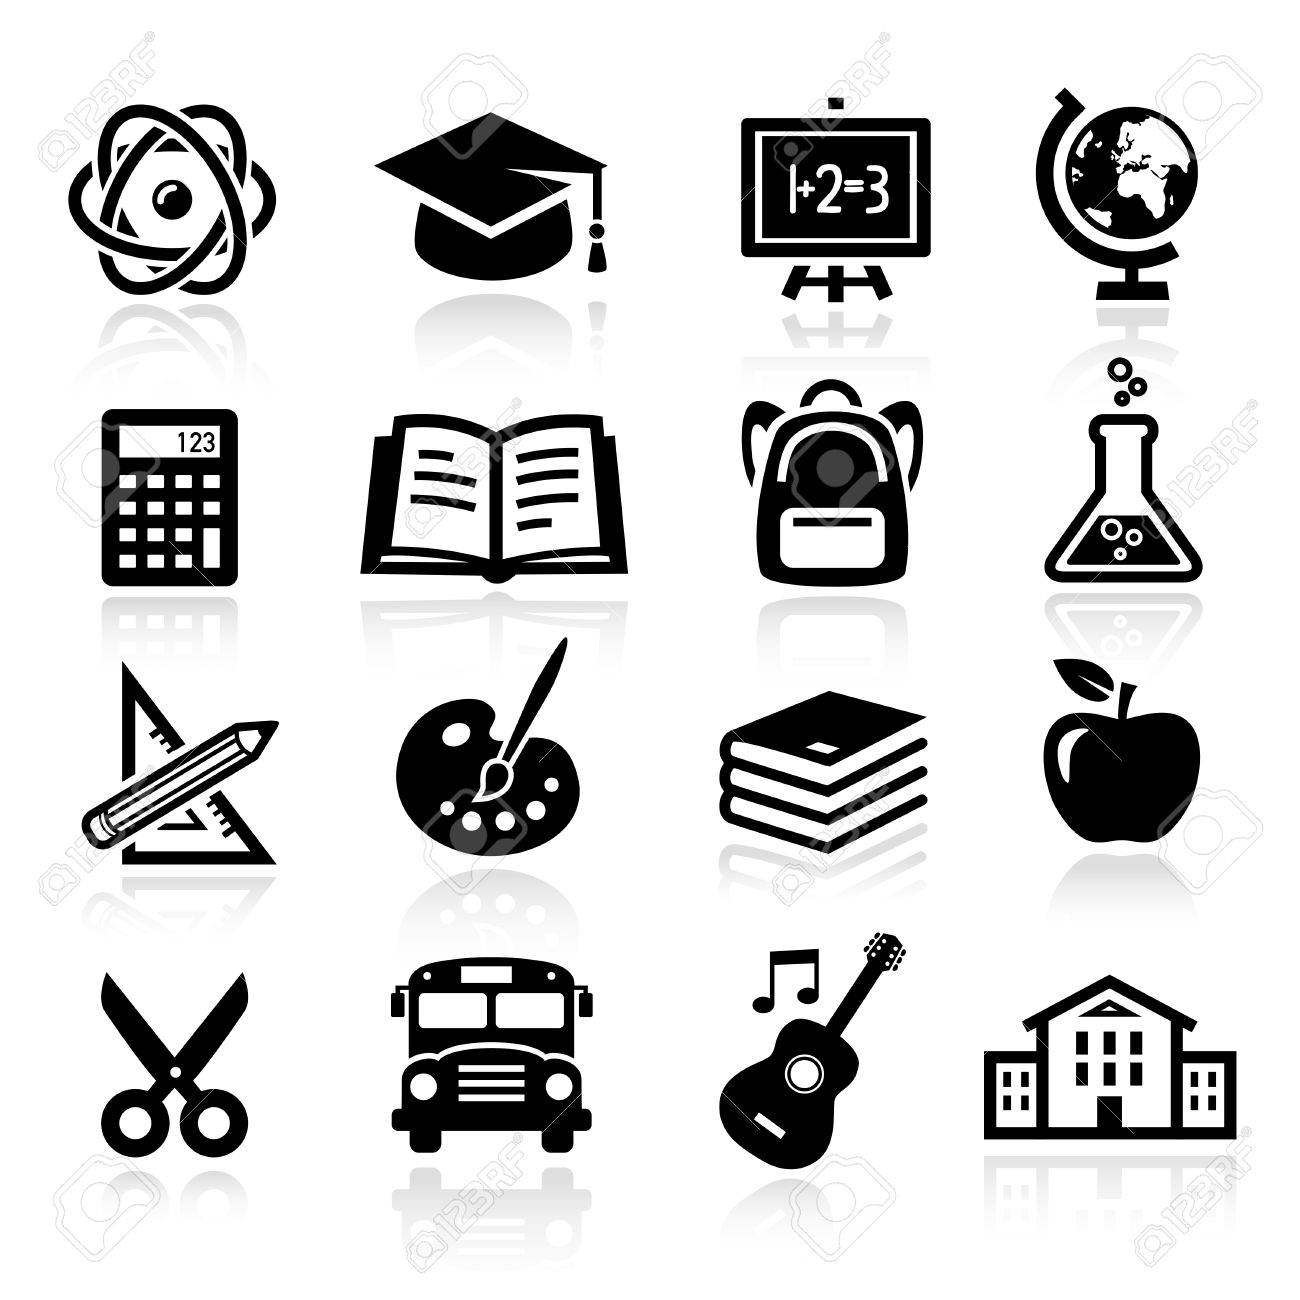 Collection of icons representing education, school and students - 50454821